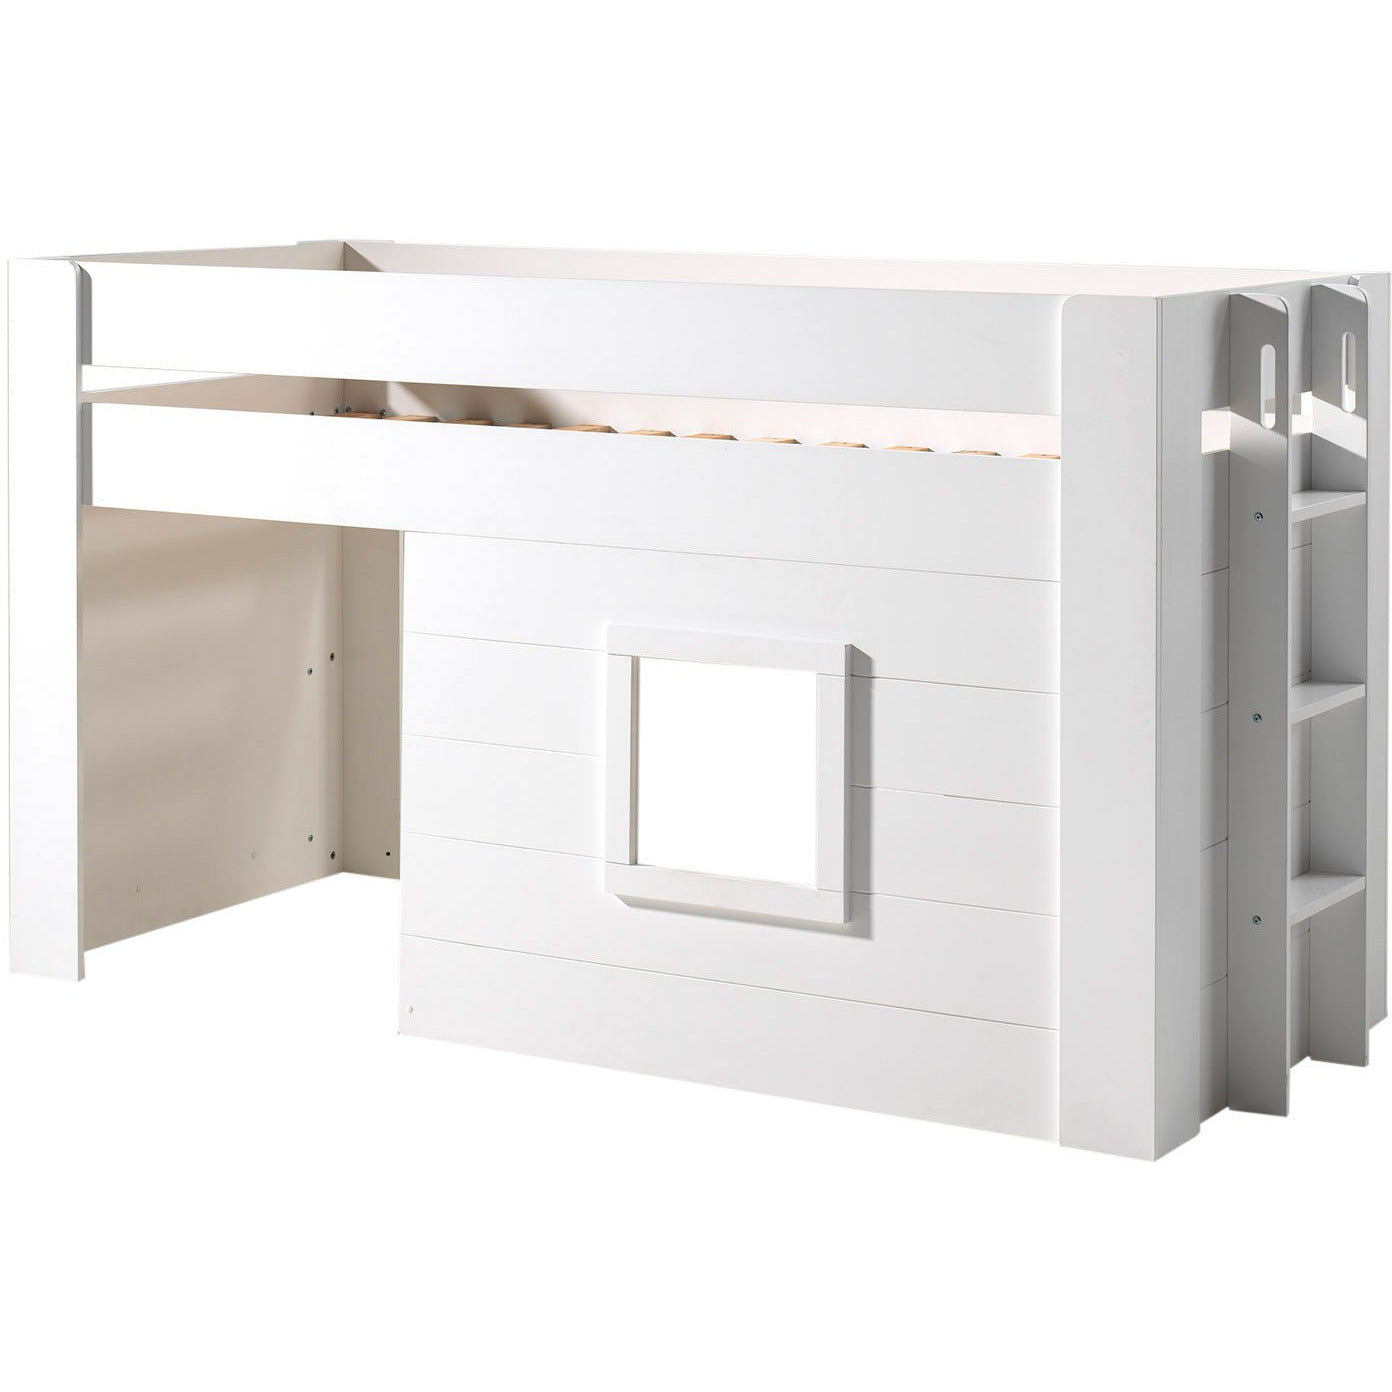 Noah - Mid Sleeper Bed in White